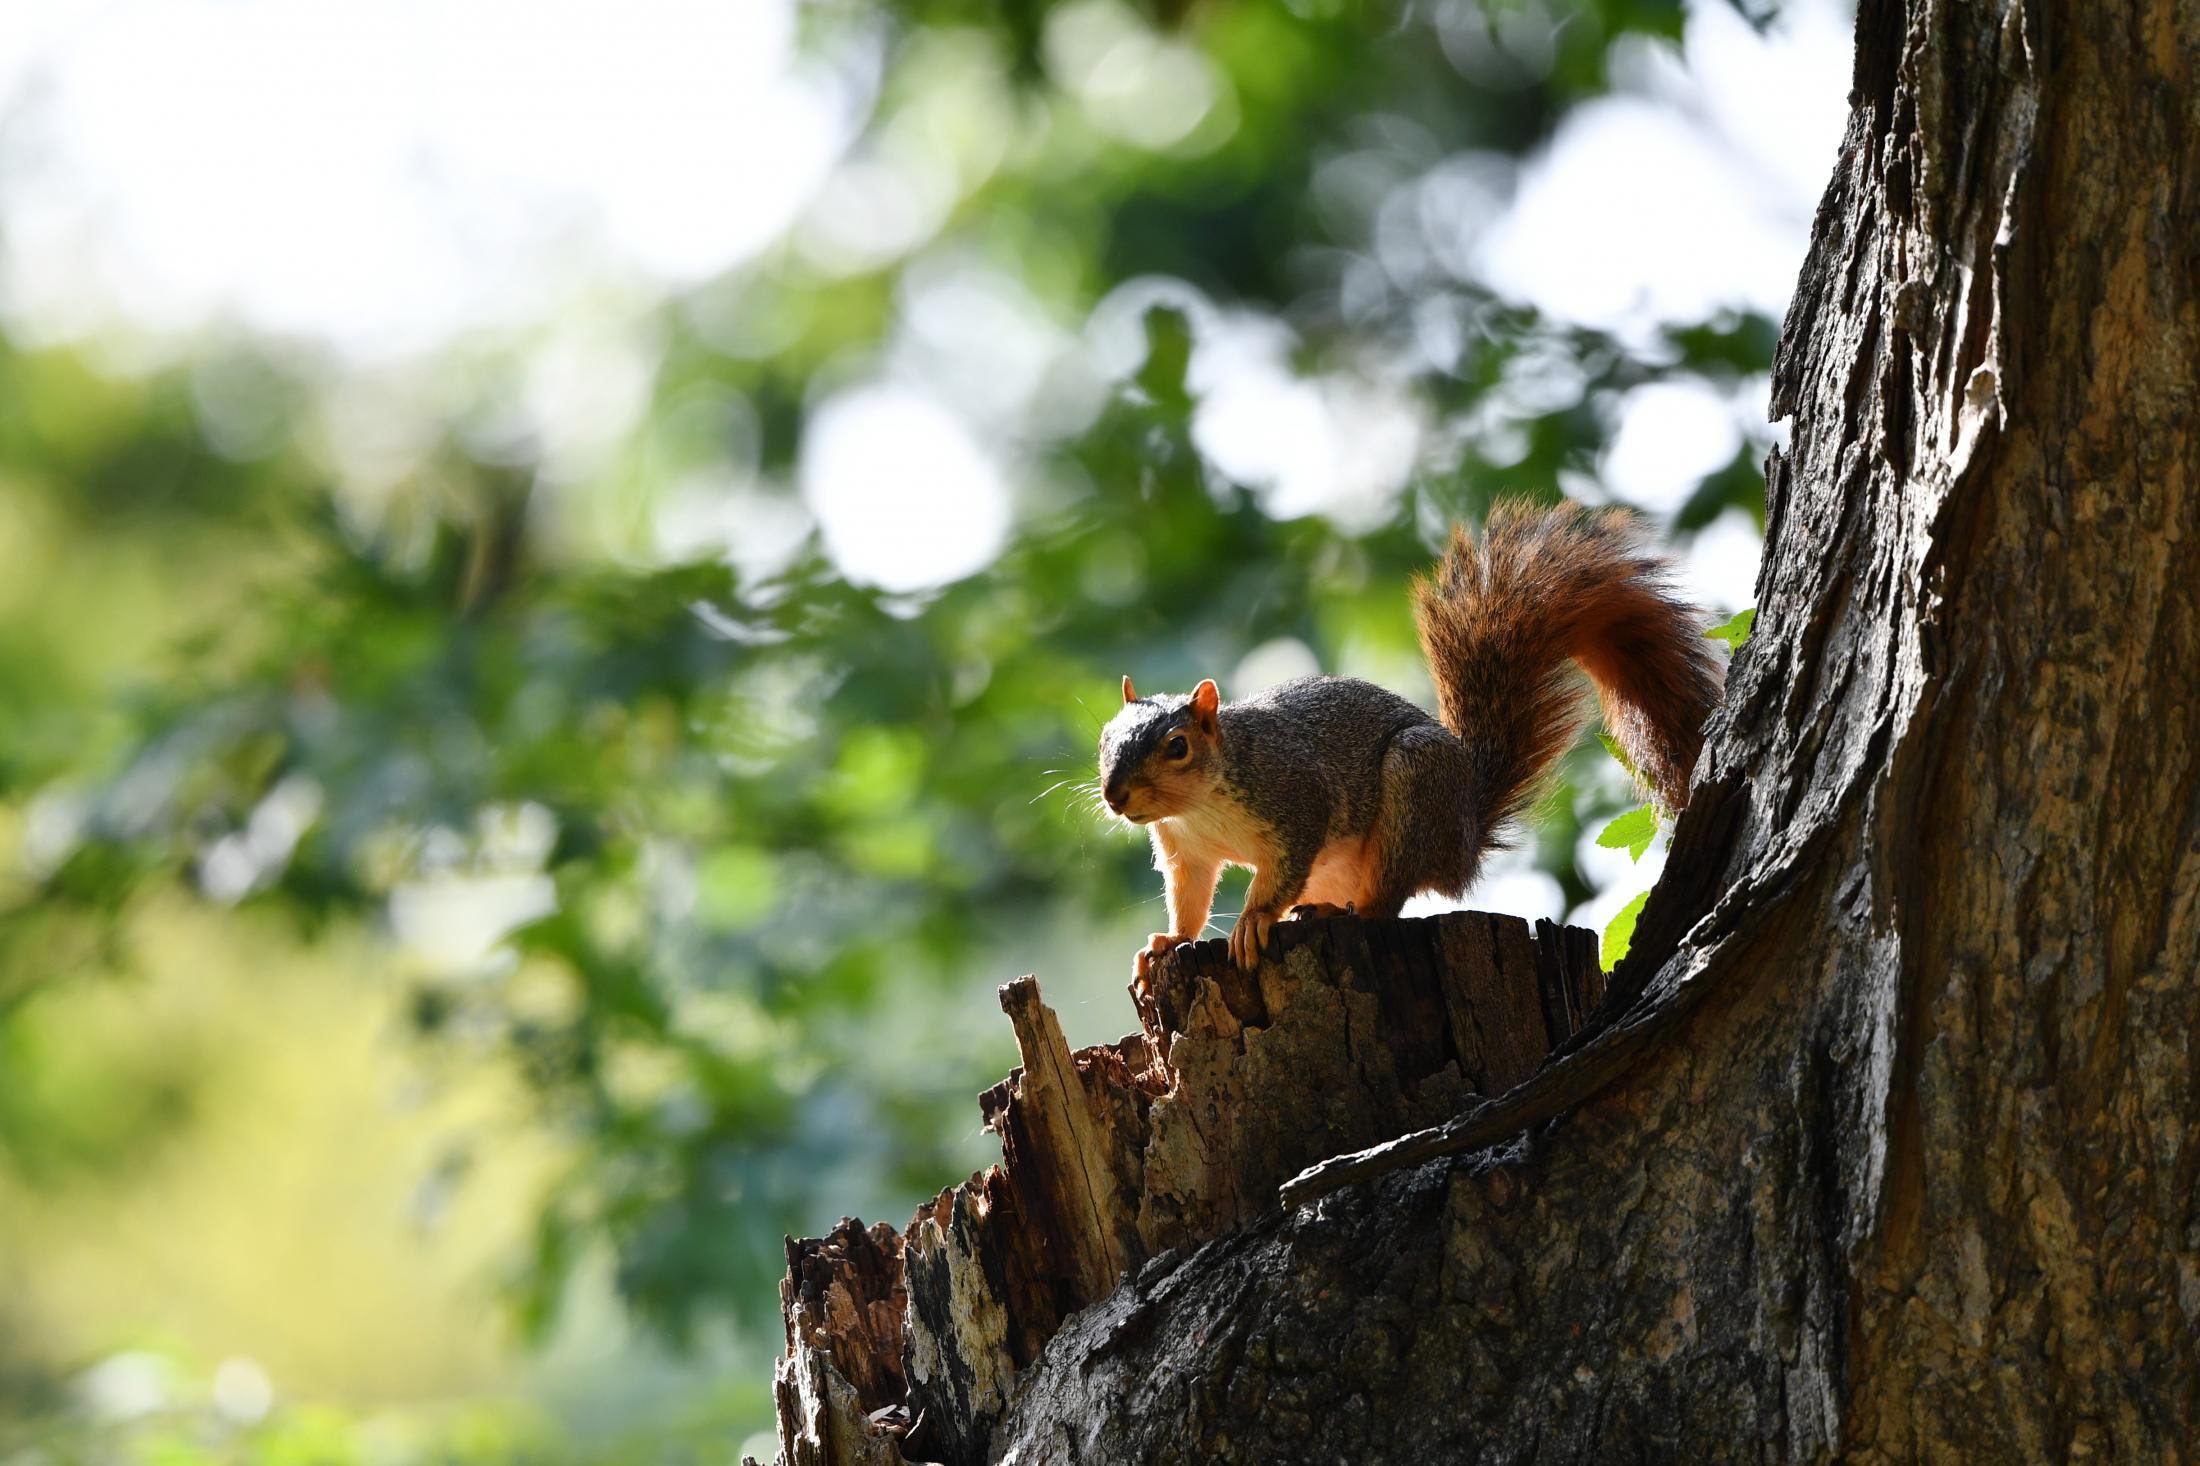 A squirrel perches in a tree Sept. 26, 2019 in Boonville, Mo.